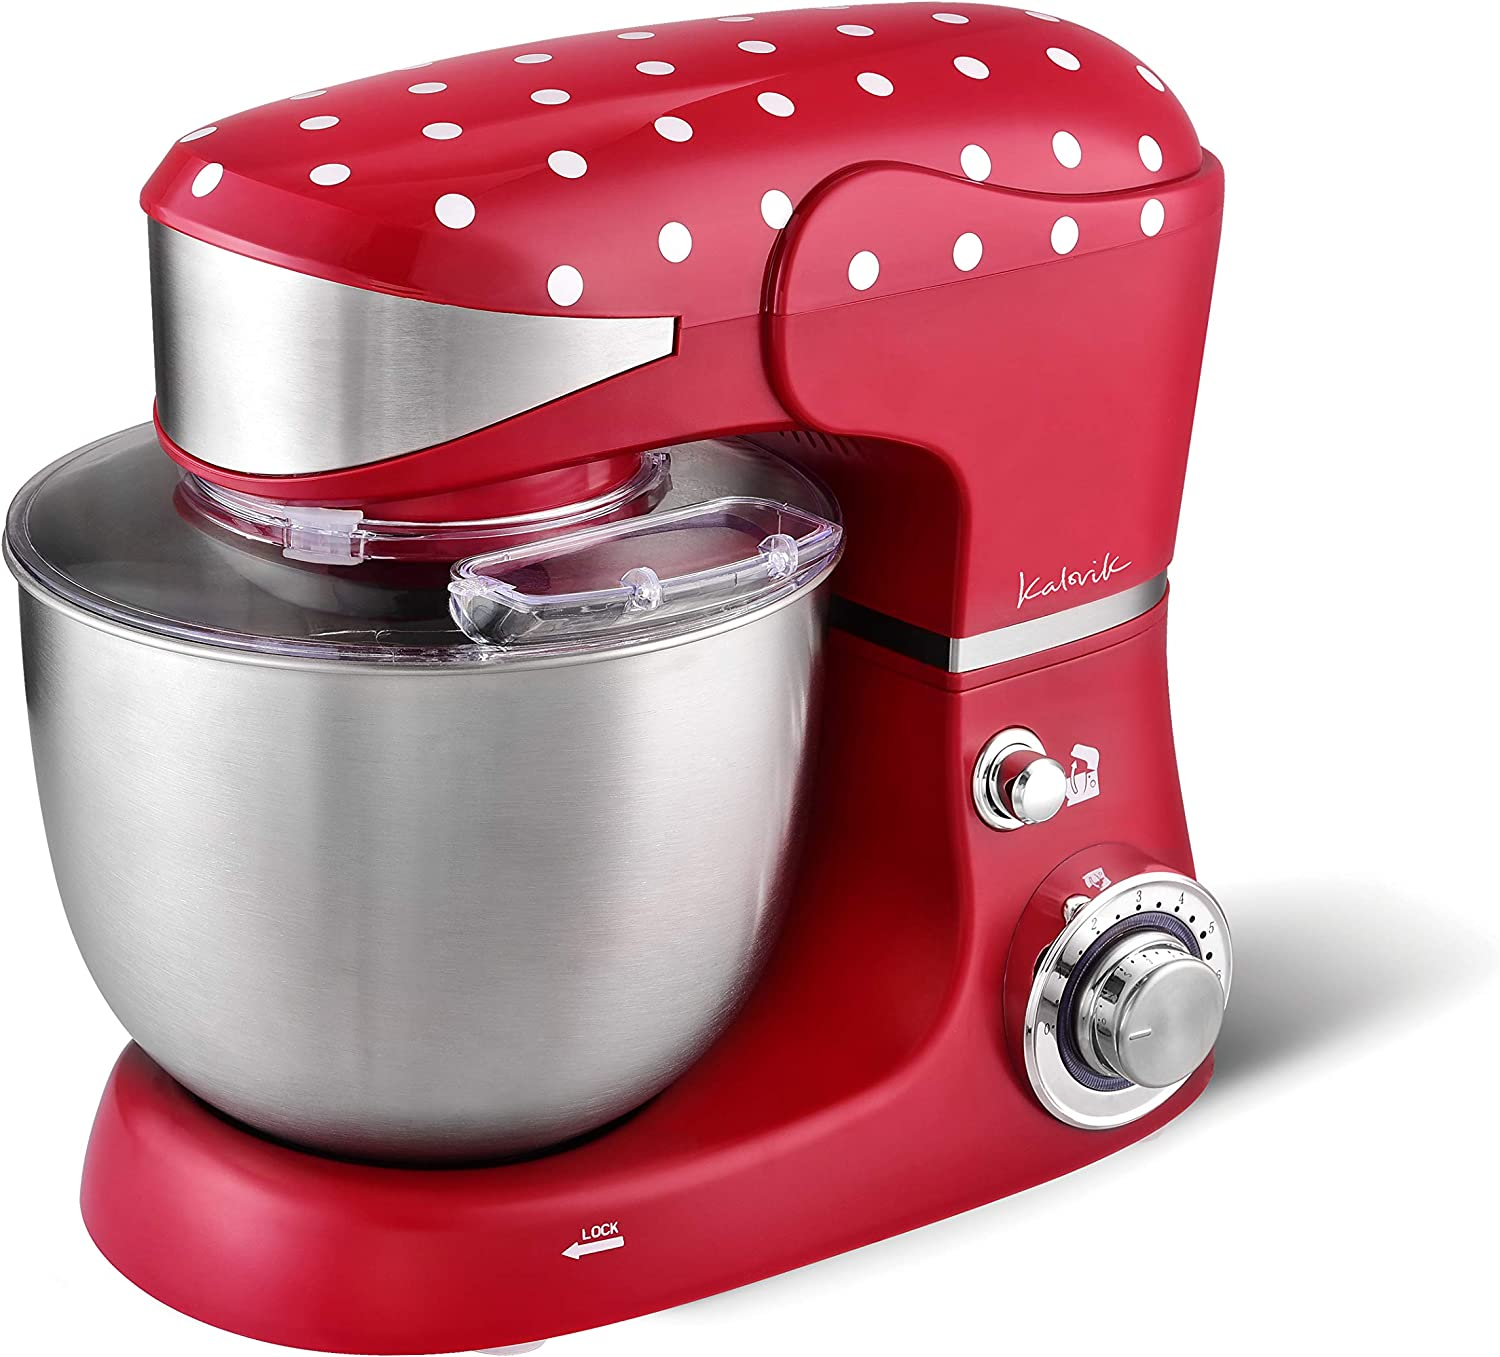 5 liters 1000 W Red /& White 6 Speeds Kalorik TKG M 3014 Vintage Style Polkadot Stand Mixer with 5L Bowl Whisk Stainless Steel Dough Hook and Flat Beater Attachments